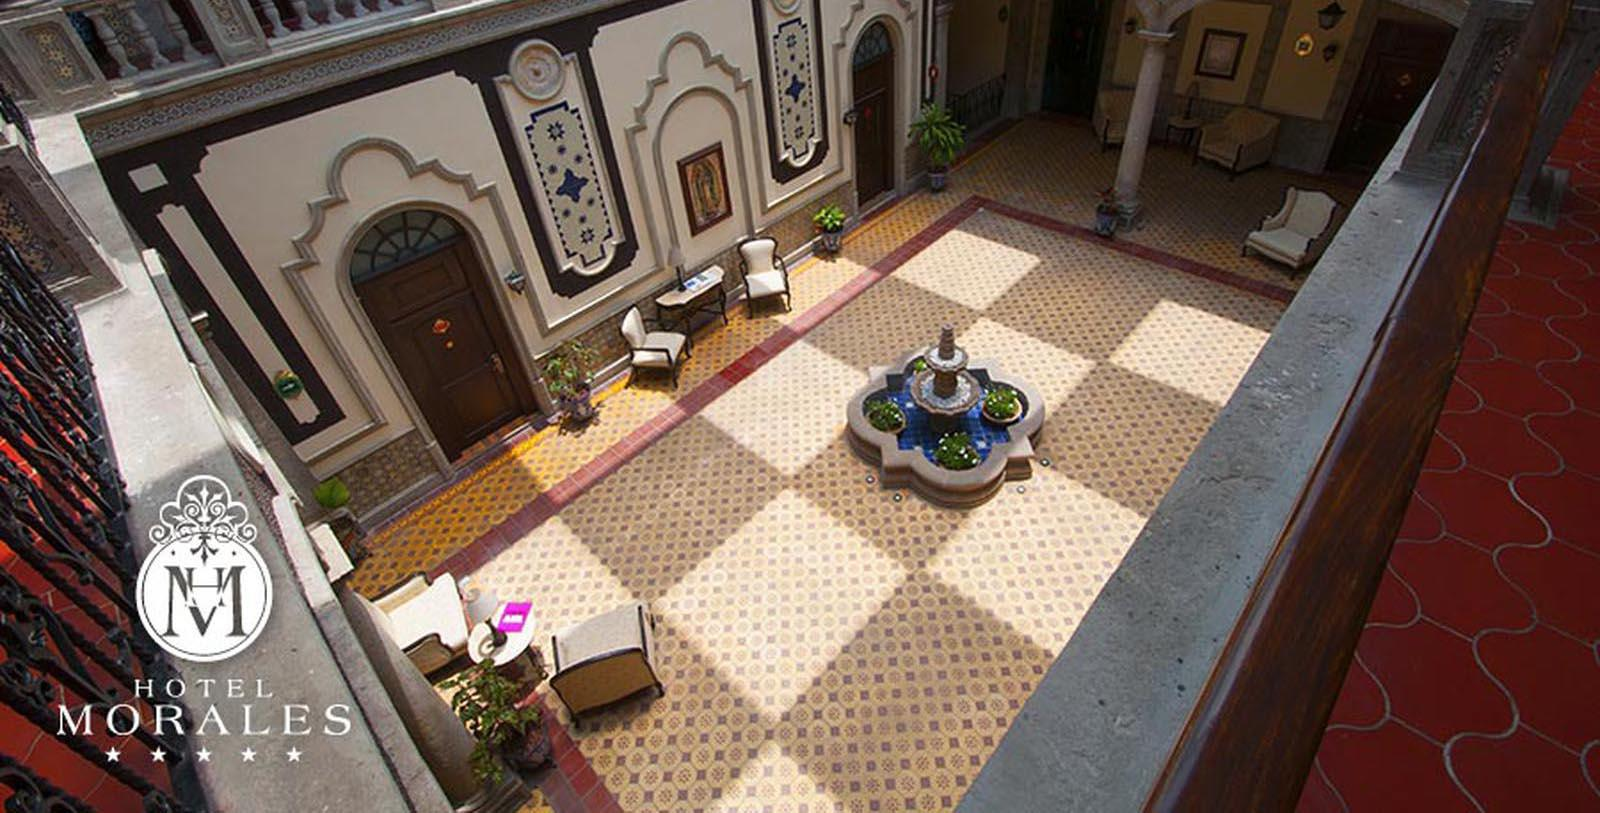 Image of Lobby & Interior Courtyard, Hotel Morales, Guadalajara, Mexico, 1800s, Member of Historic Hotels Worldwide, Overview